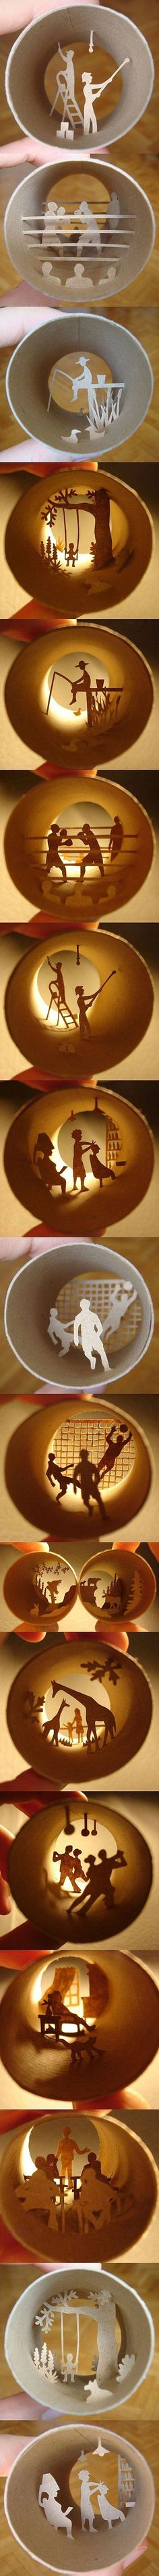 Cylindrical paper arts using coffee cups